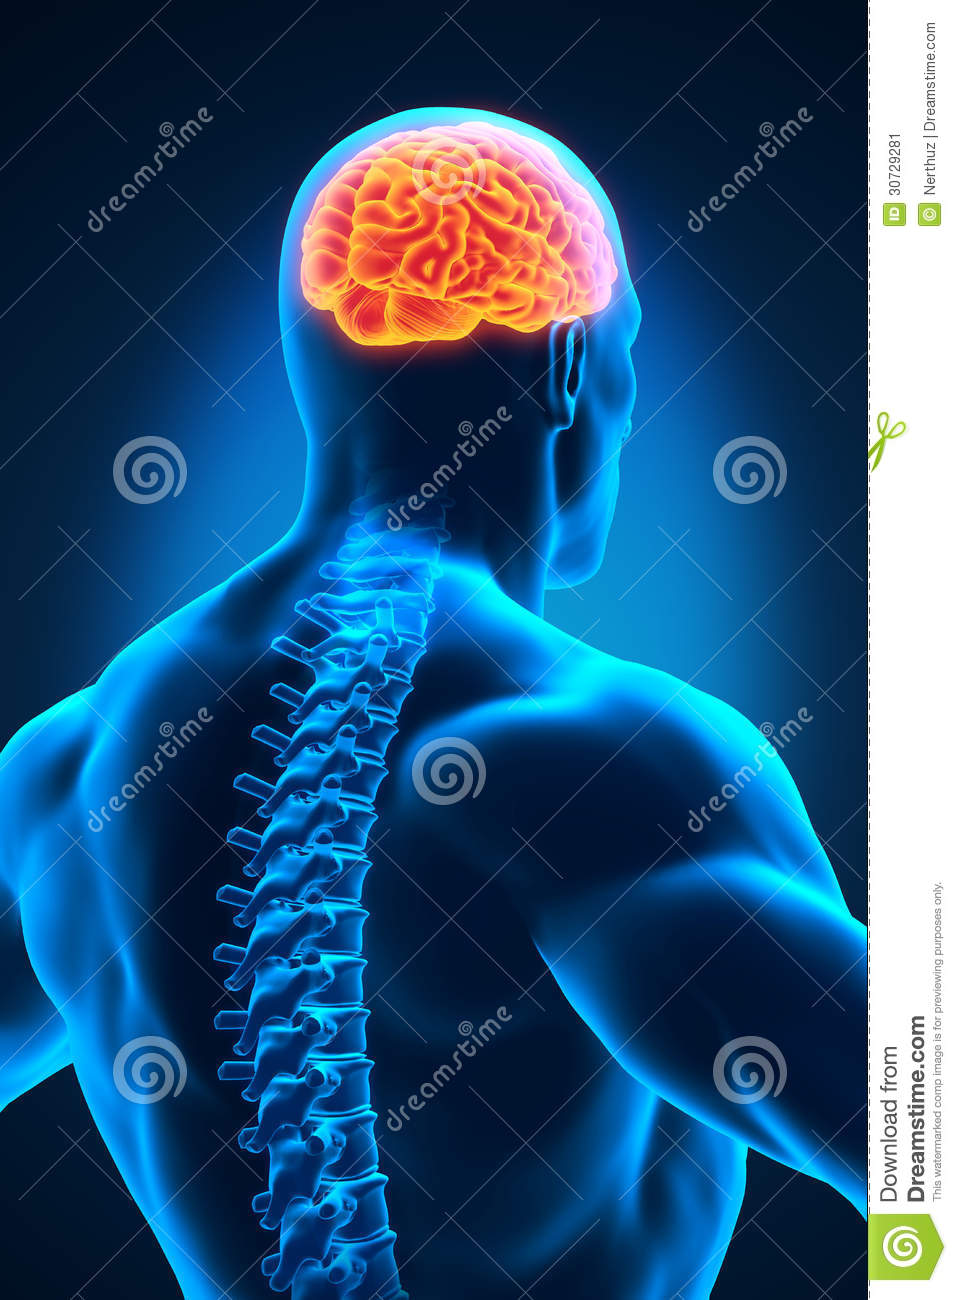 Spinal Cord And Brain Anatomy Stock Illustration - Illustration of ...